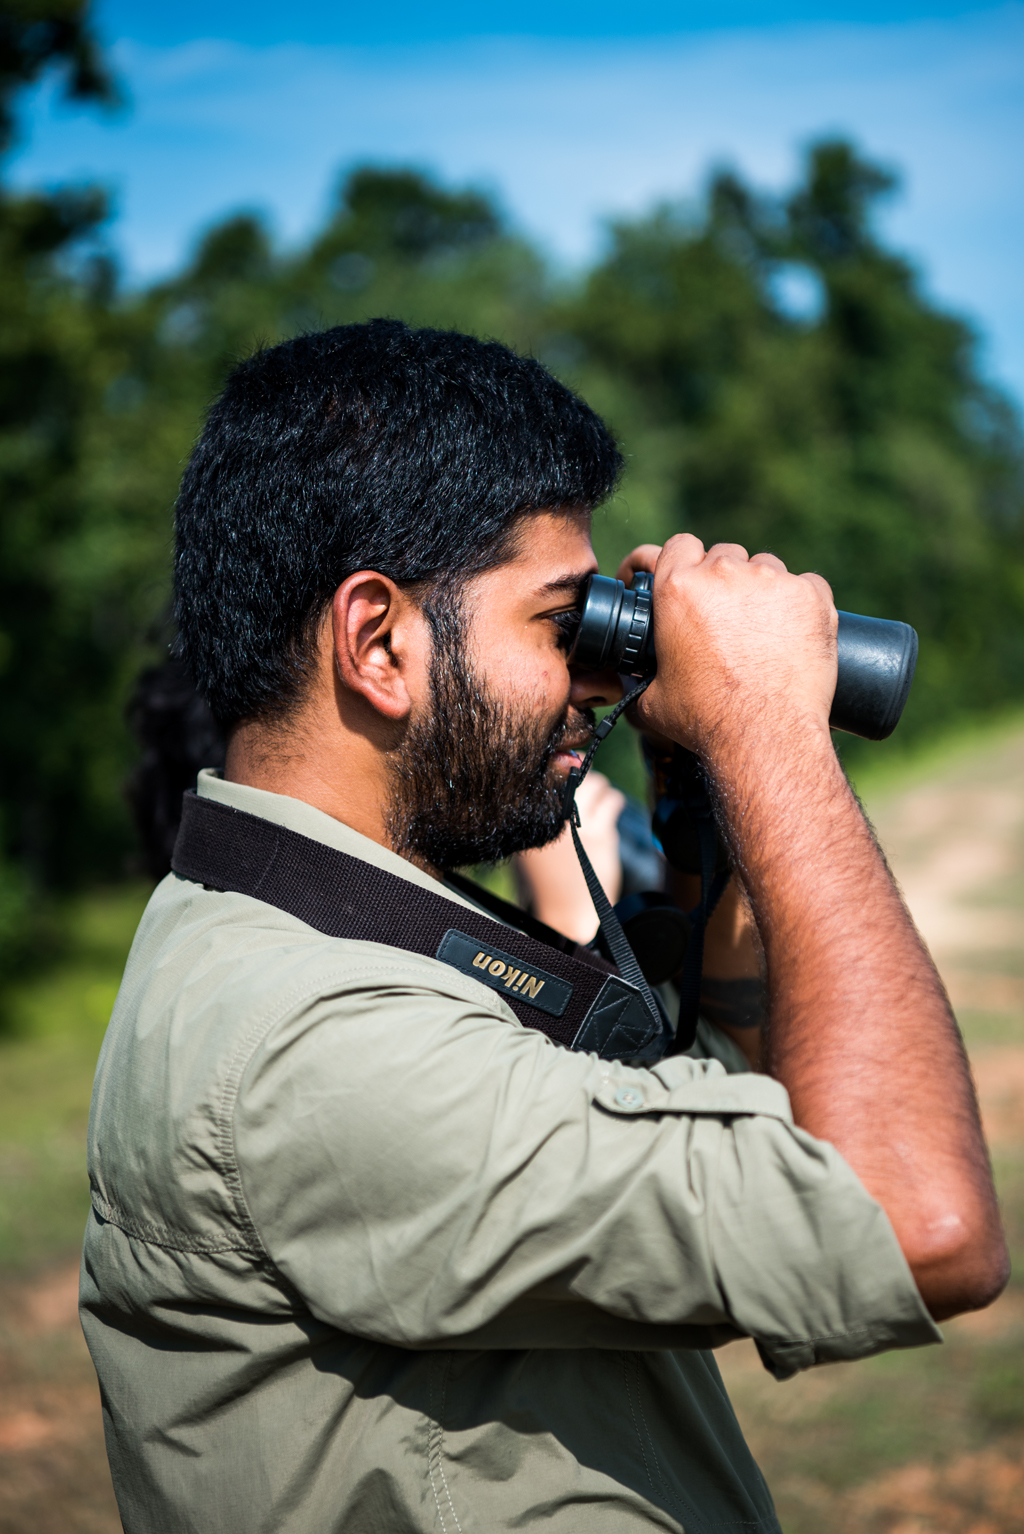 Pranad Patil is a naturalist at the Singinawa Jungle Lodge in Kanha